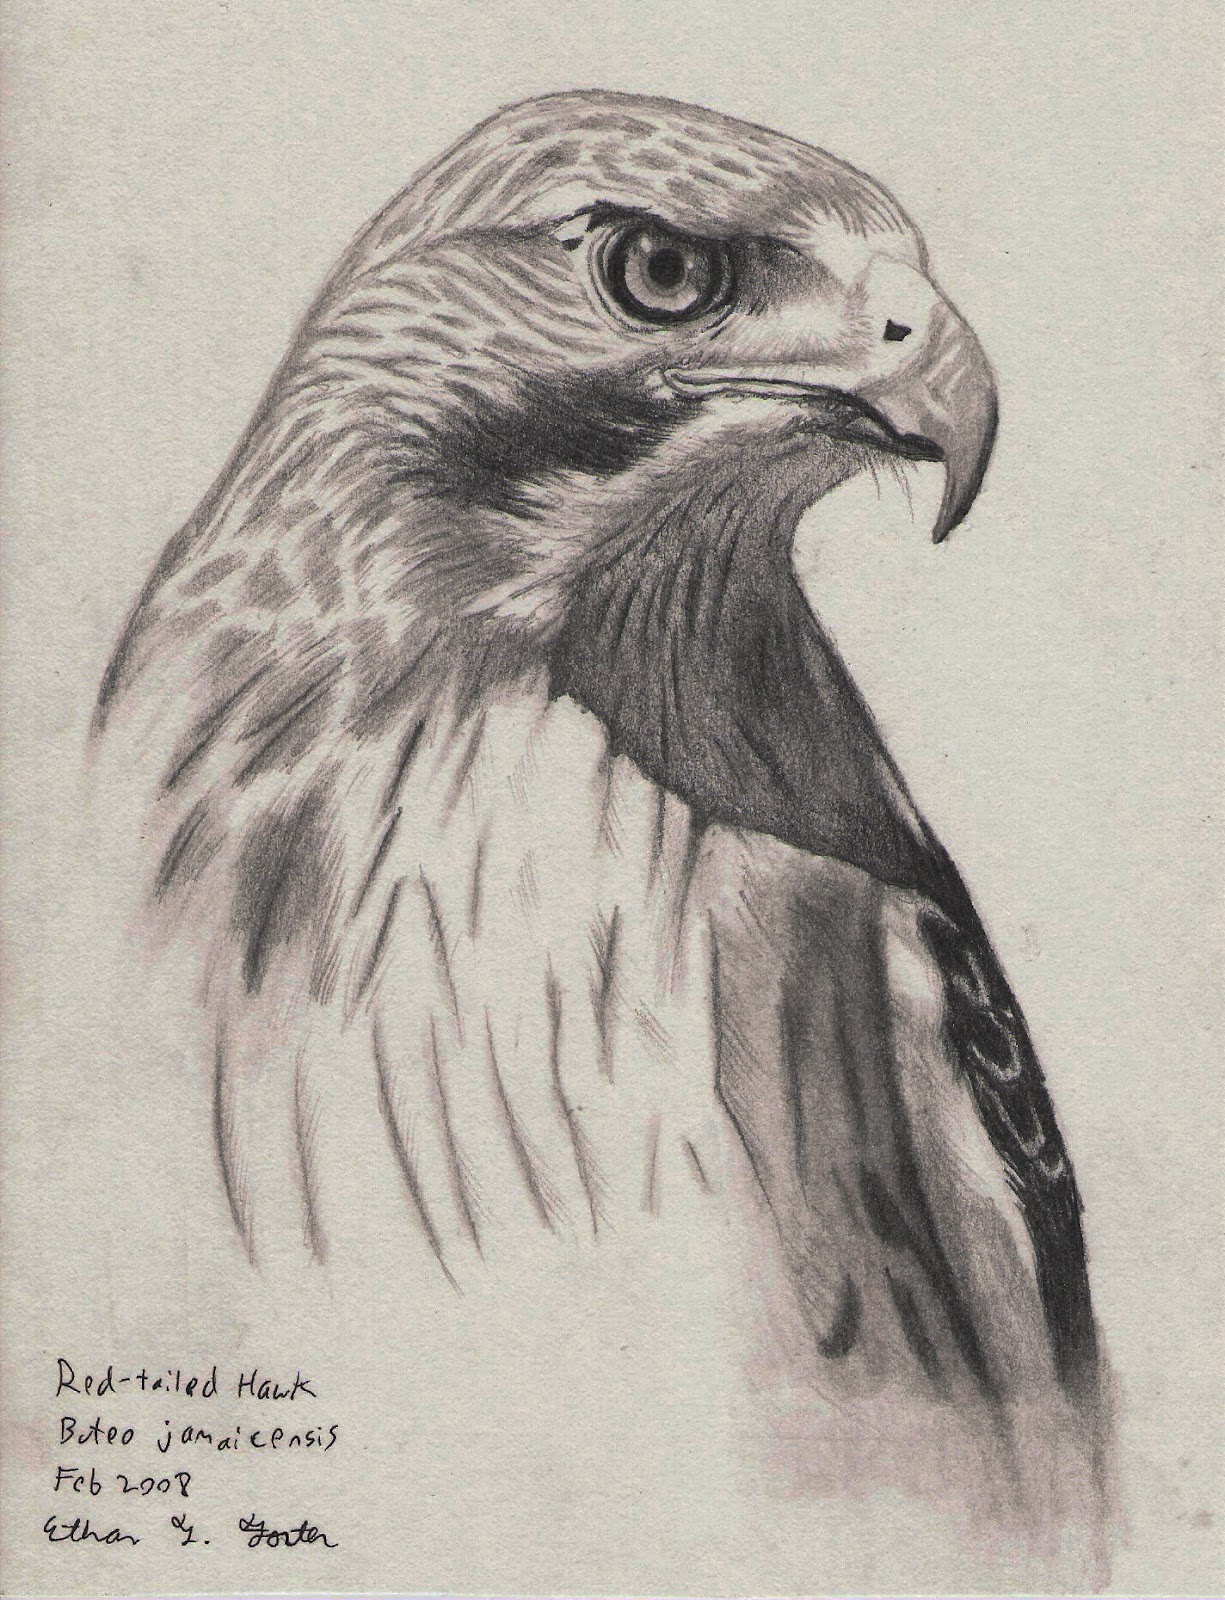 Hawk pencil drawing done in h hb b3 pencil